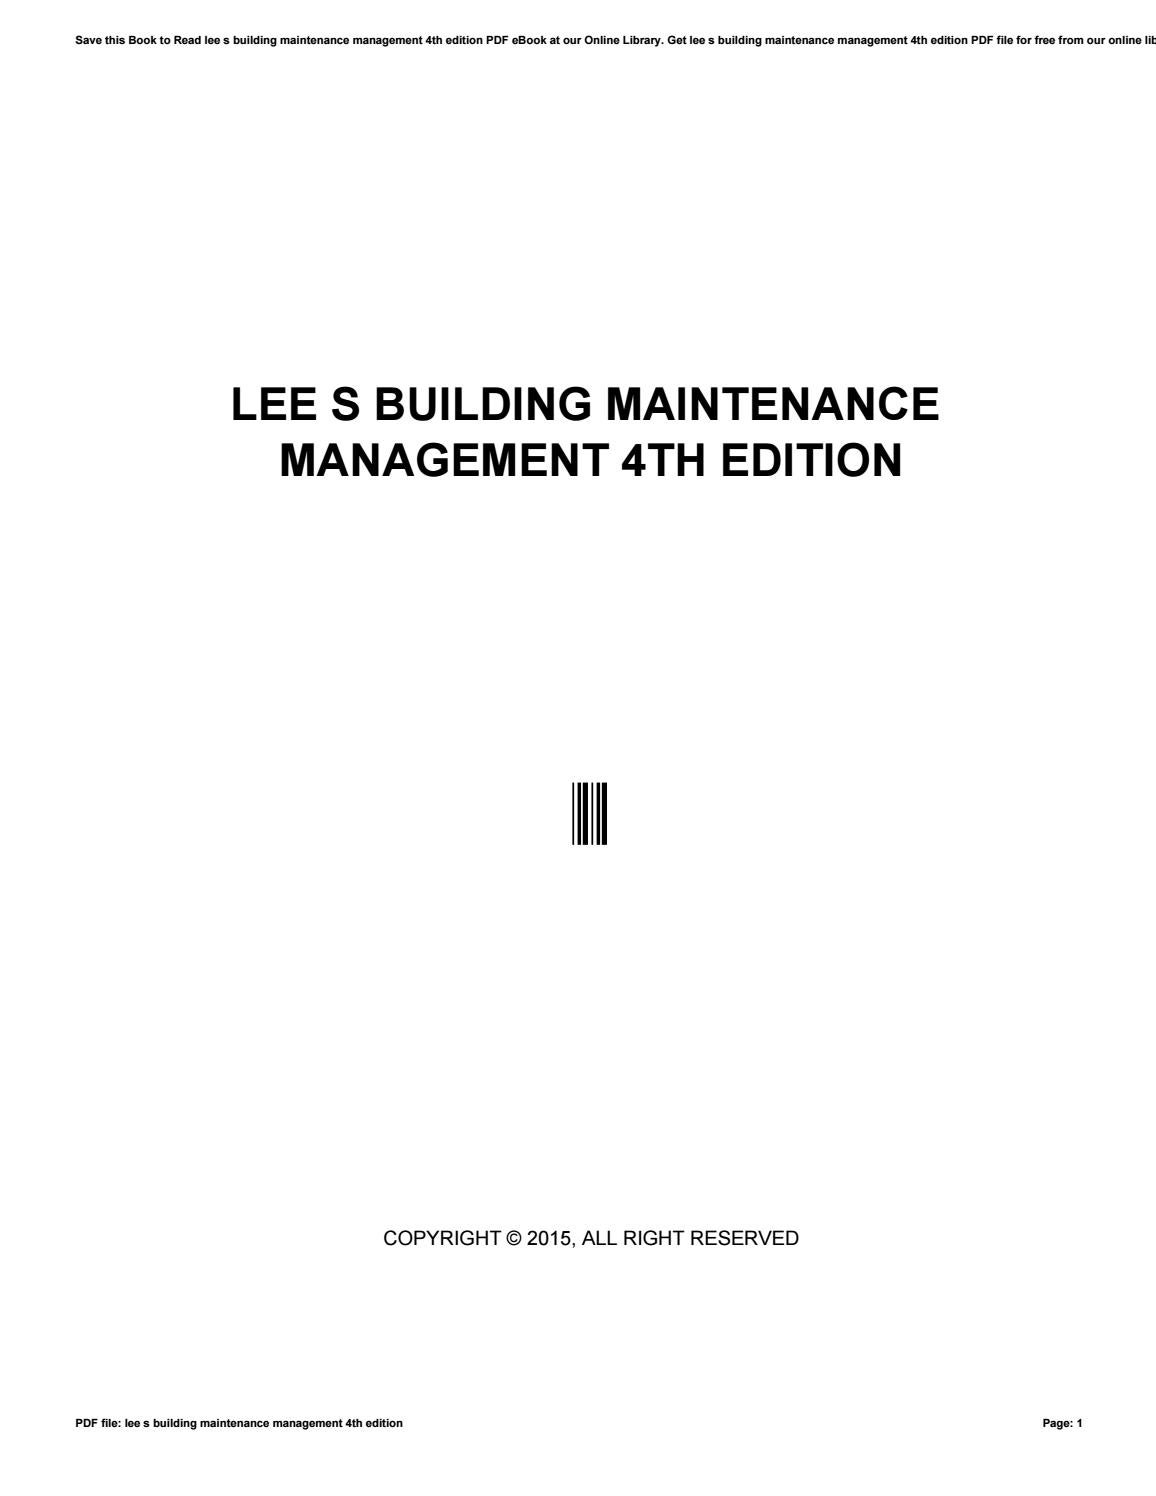 Lee s building maintenance management 4th edition by